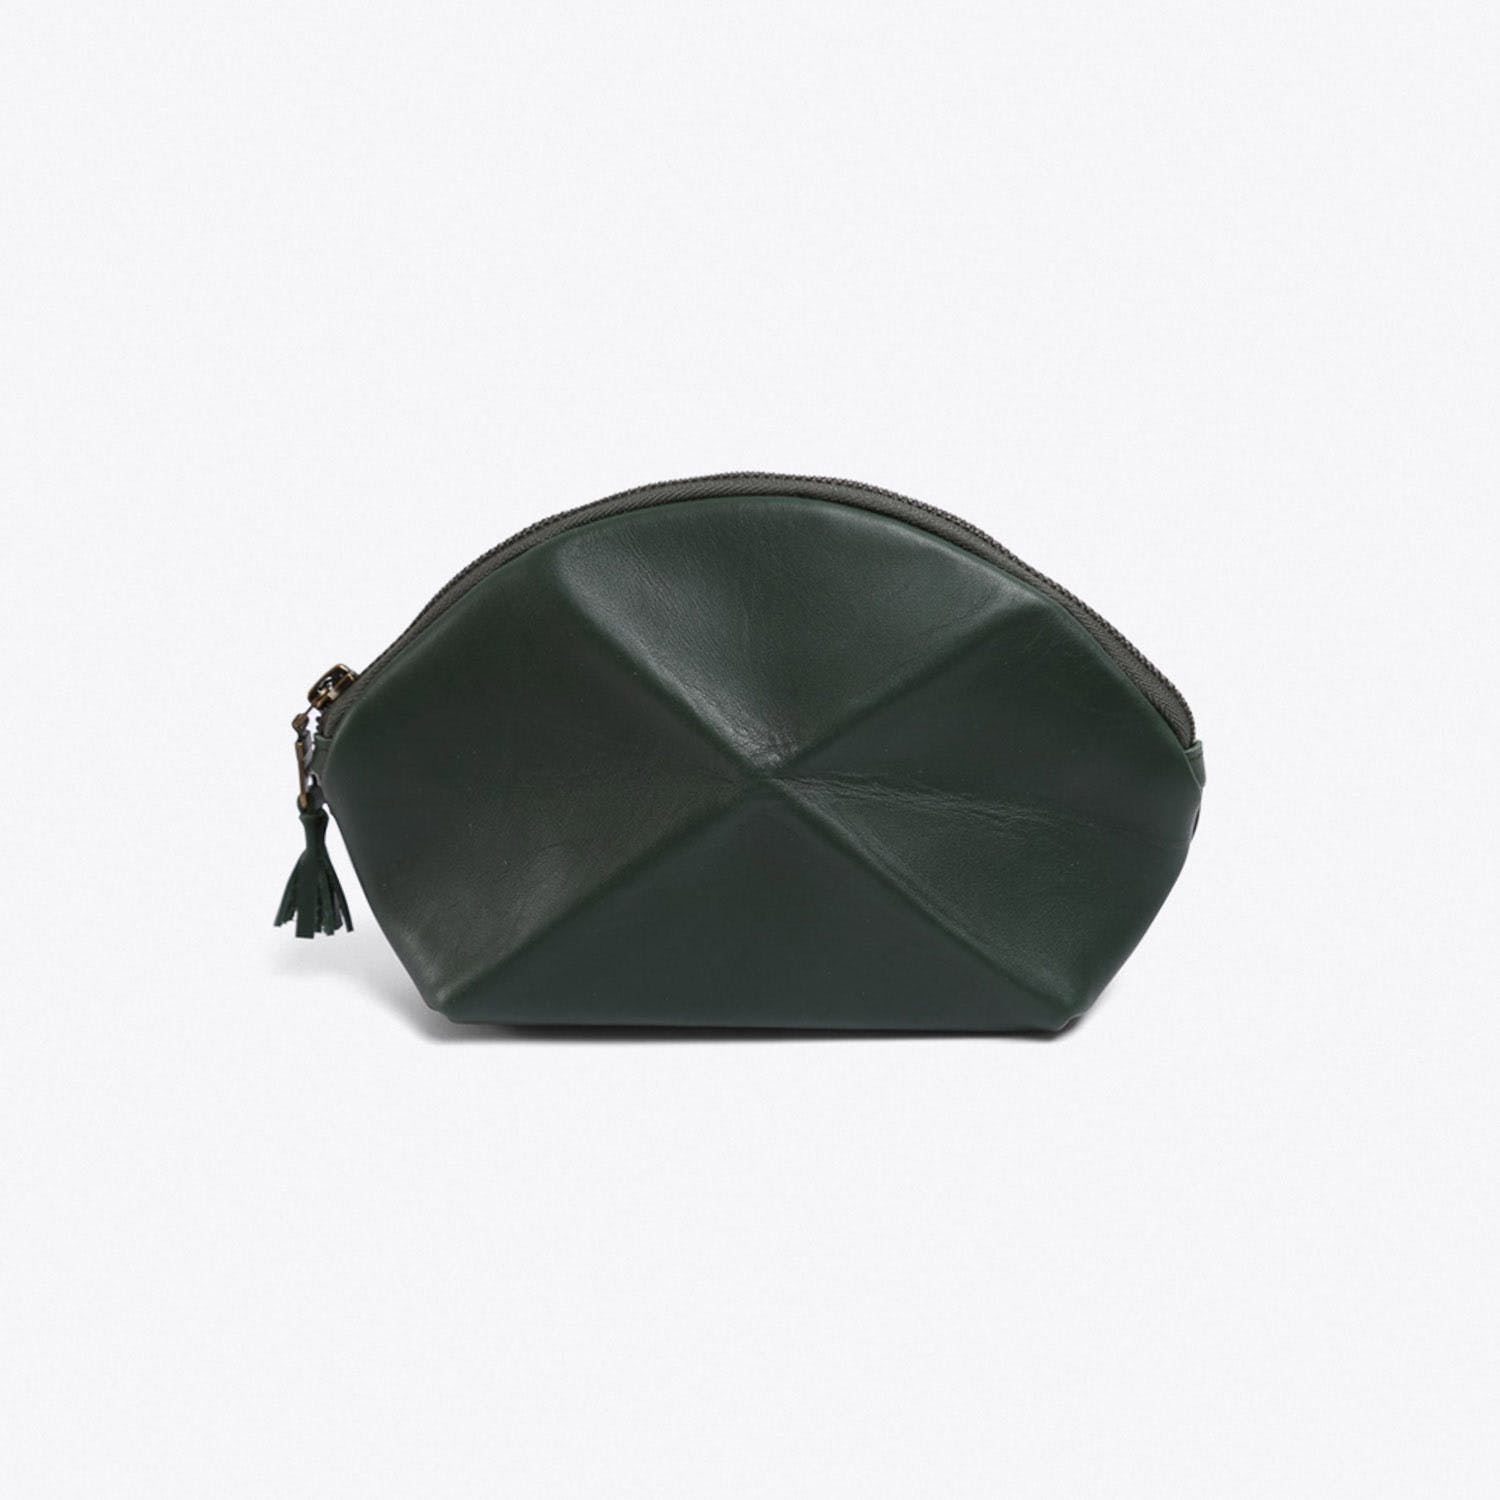 Pyramid Make Up Bag in Green